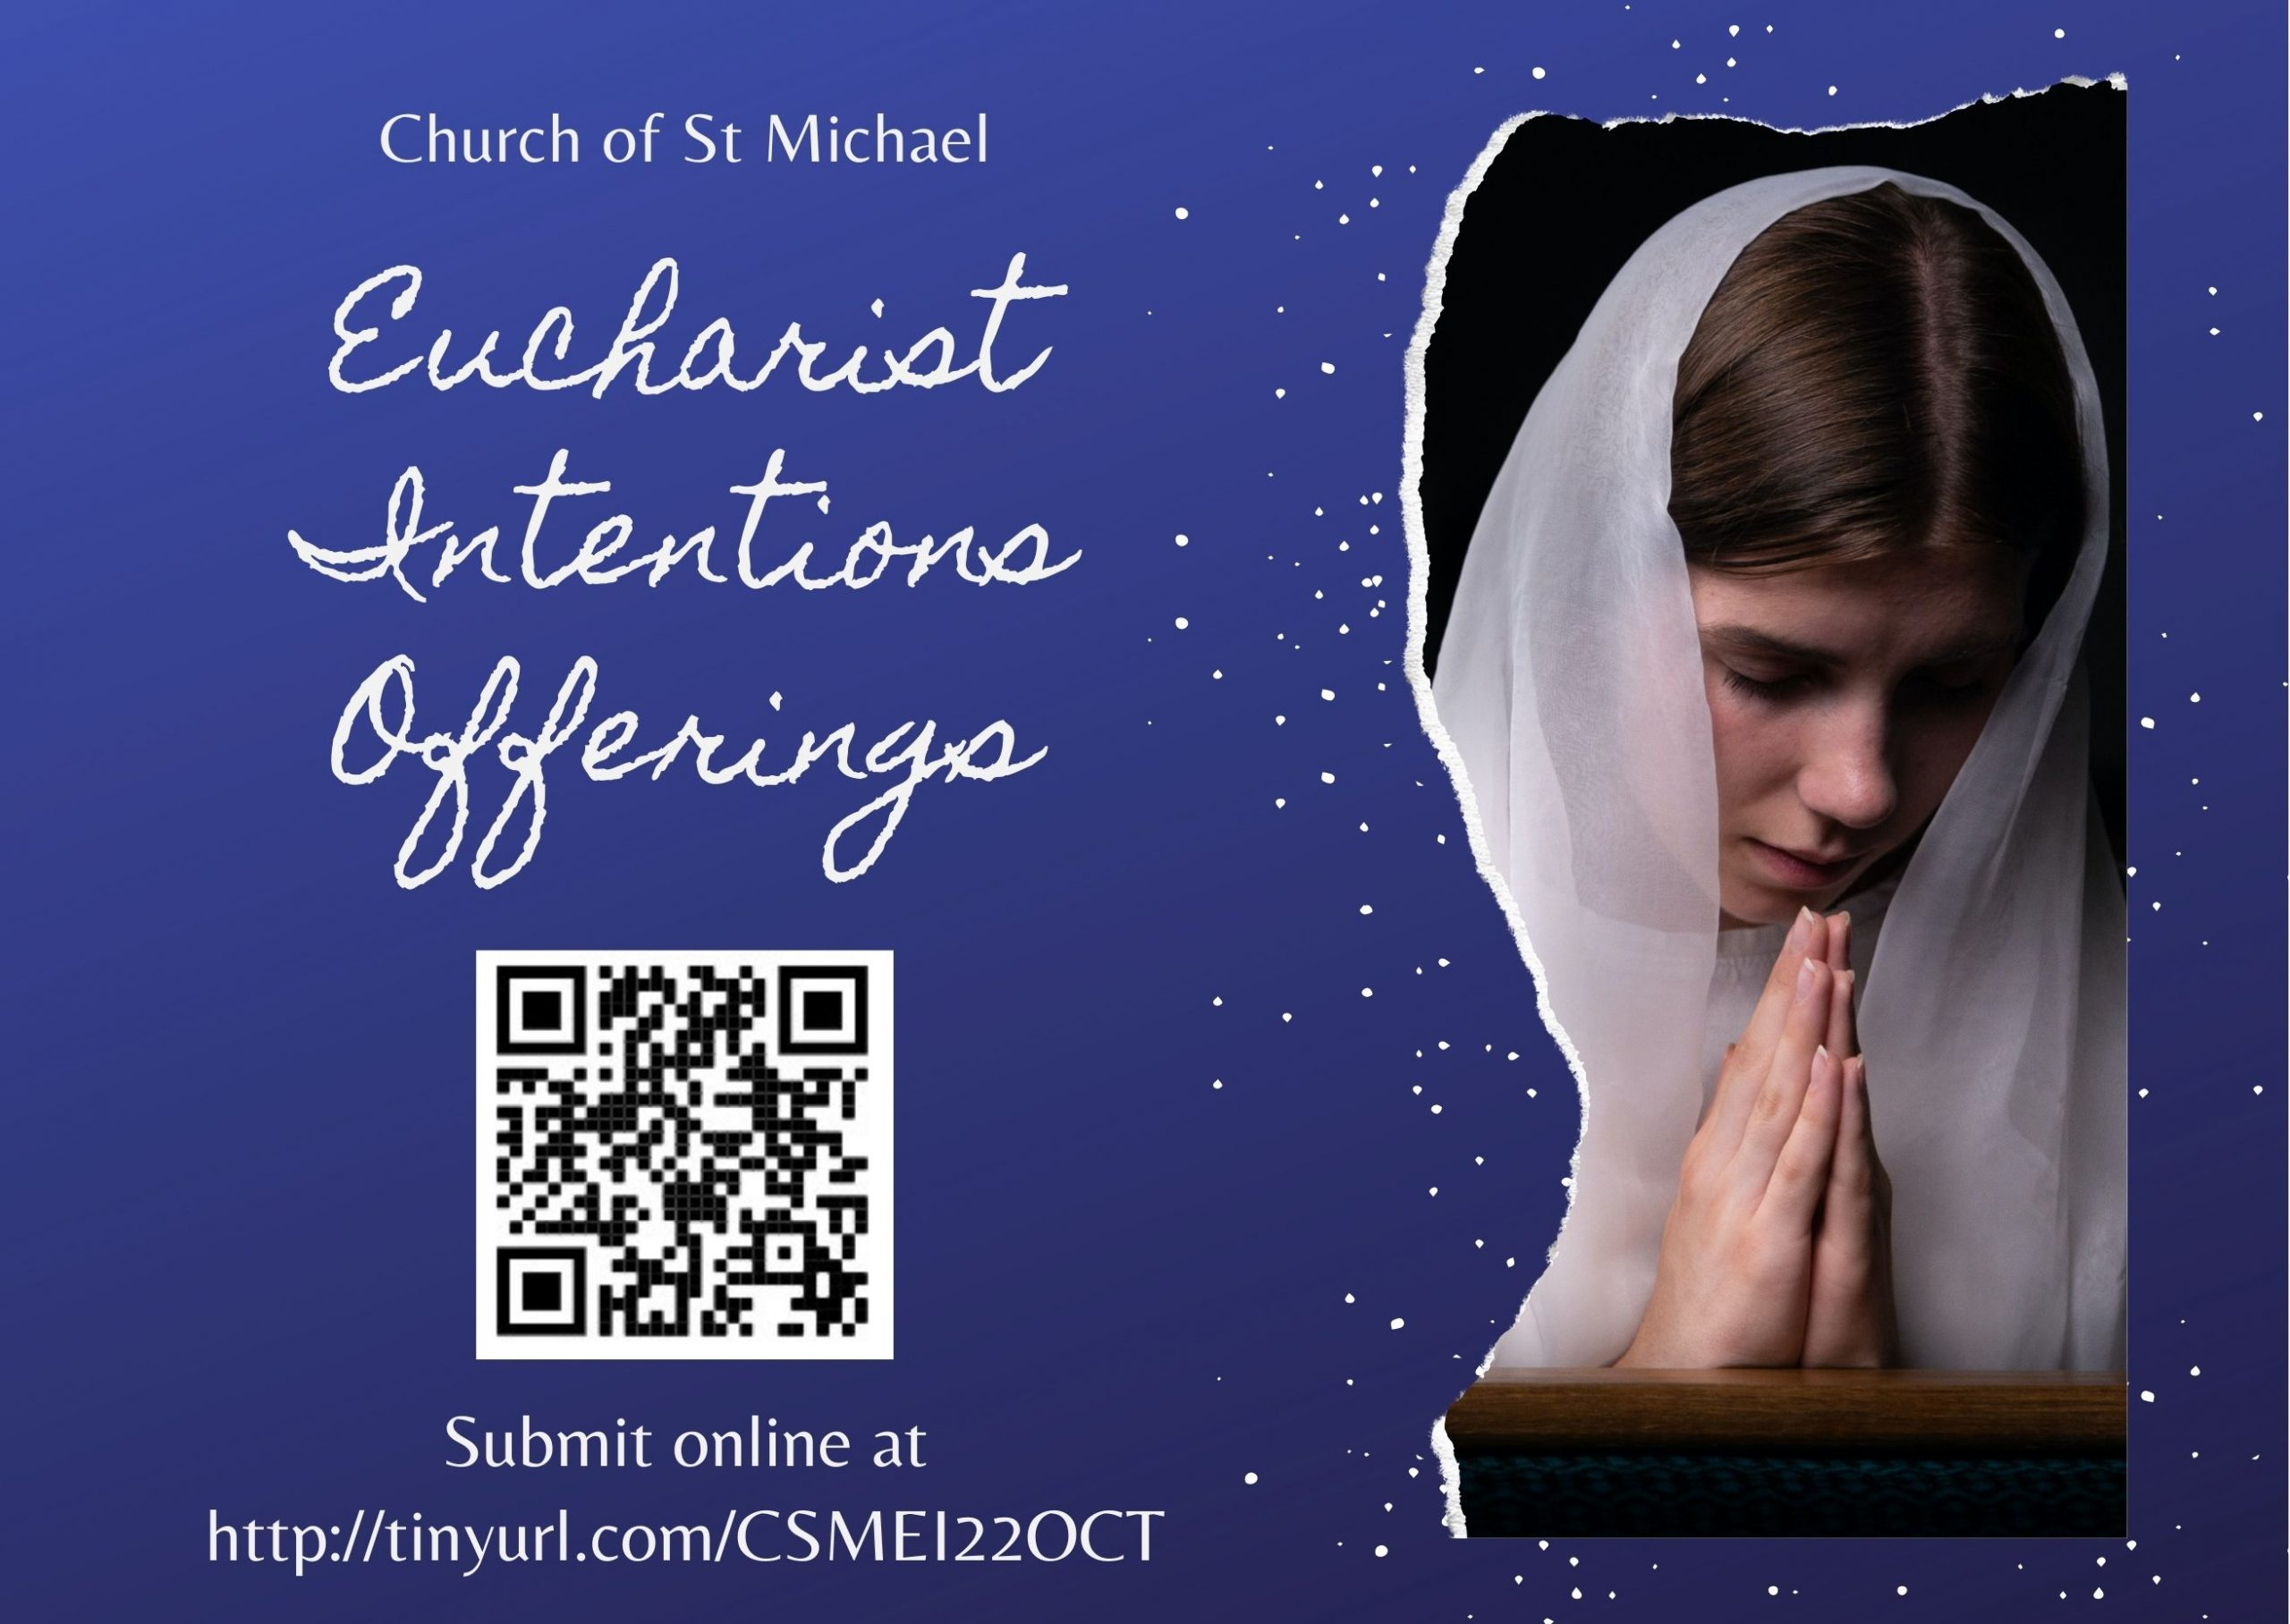 Submit Eucharist Intentions Offerings Online